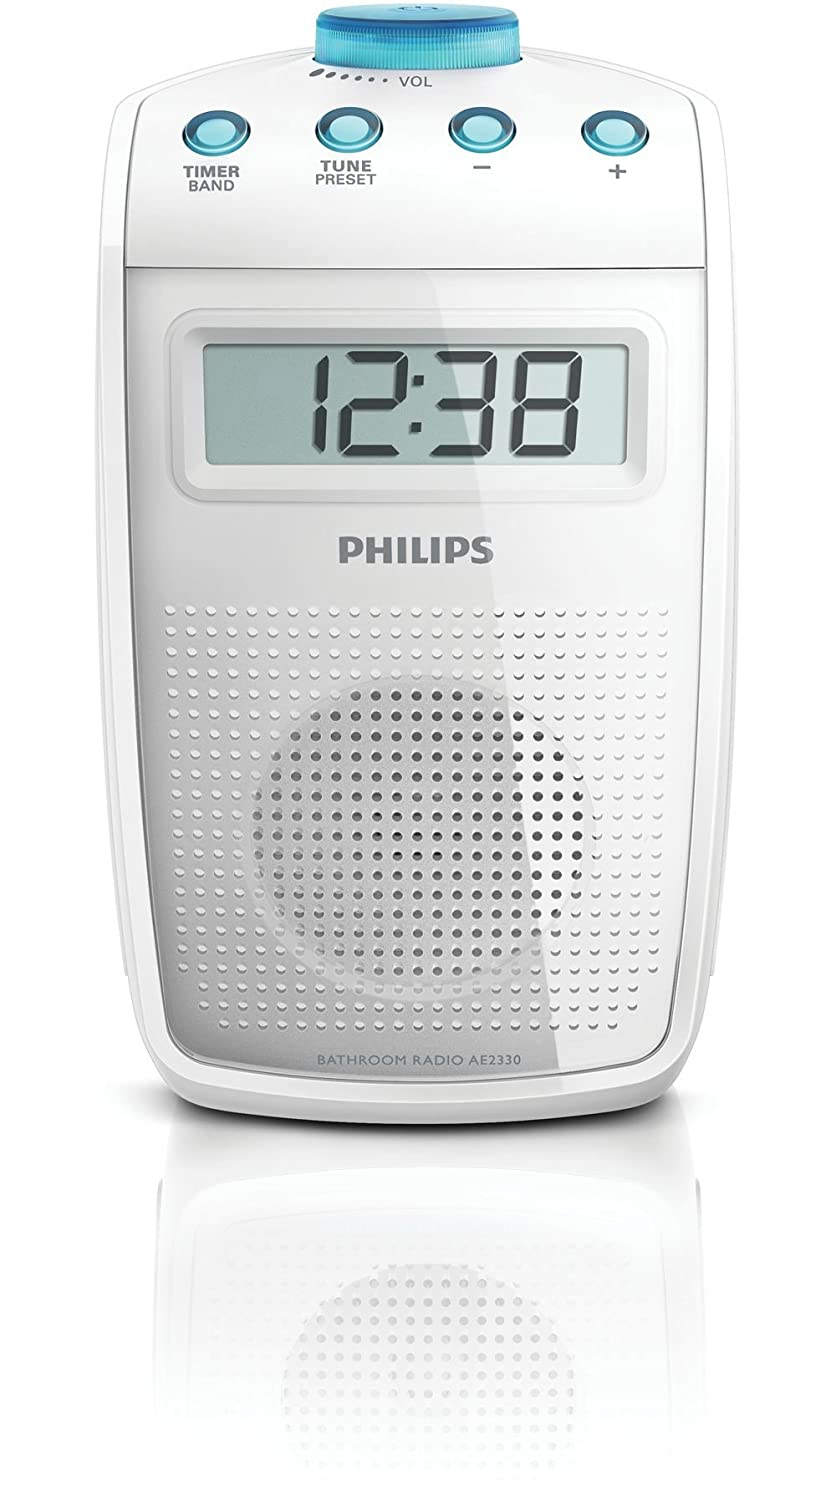 Comparer PHILIPS AE2330 BLANC